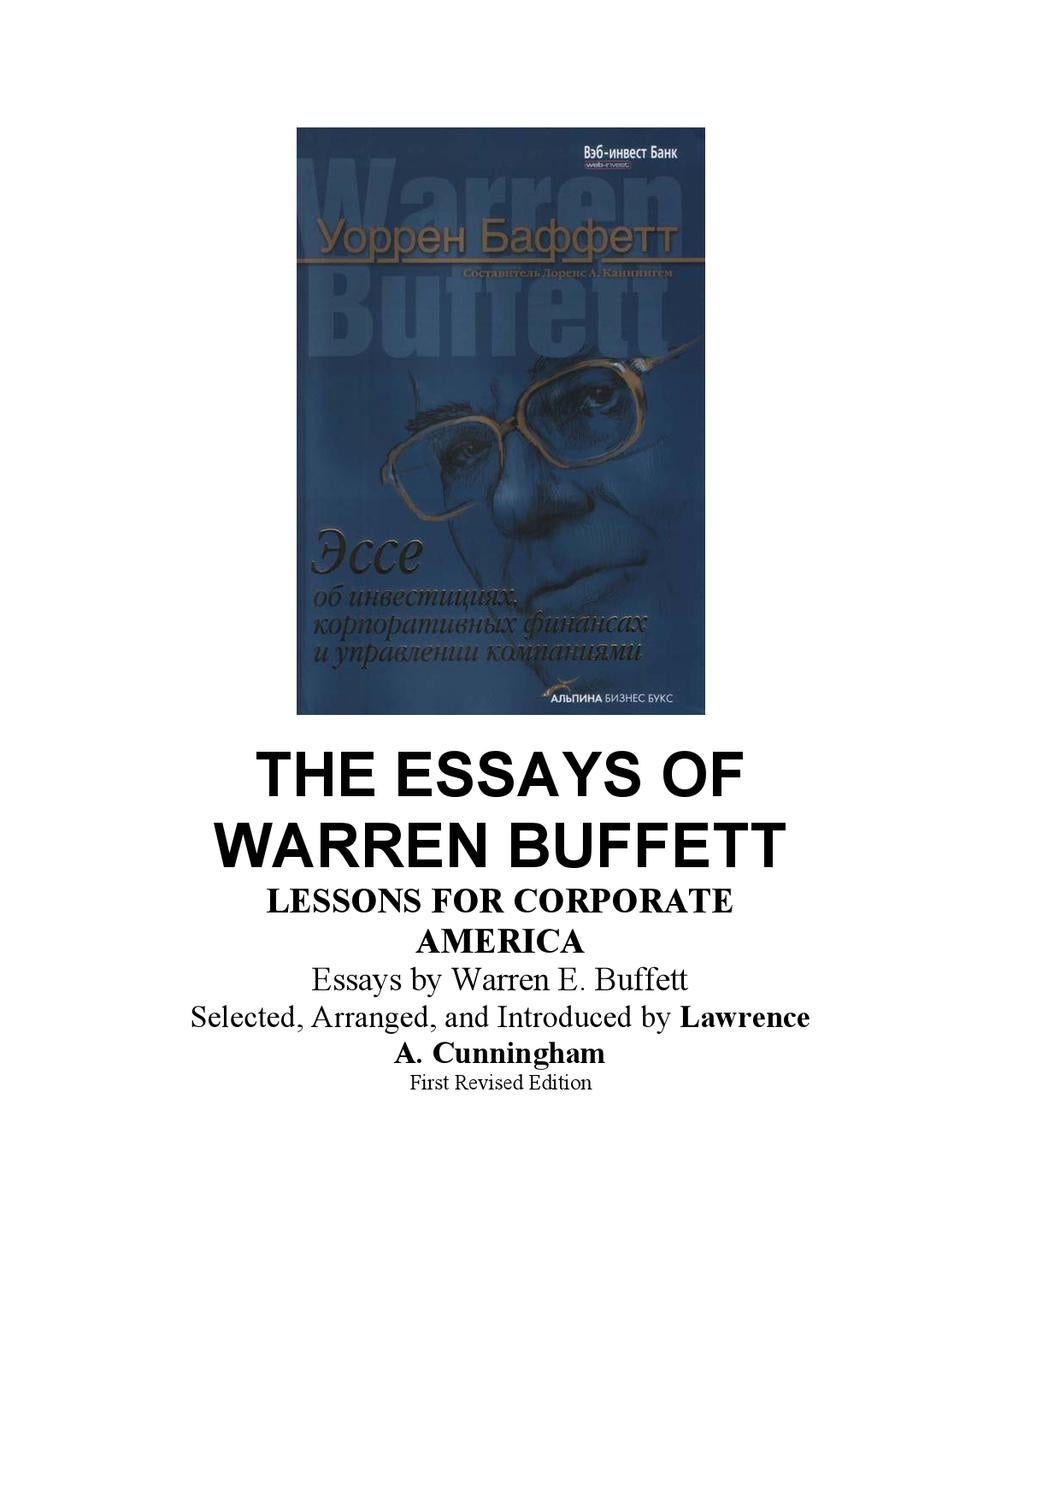 the essays of warren buffett pages Warren e buffett is the chief executive officer of berkshire hathaway, a $70+ billion holding company engaged in a variety of businesses bibliographic information title.